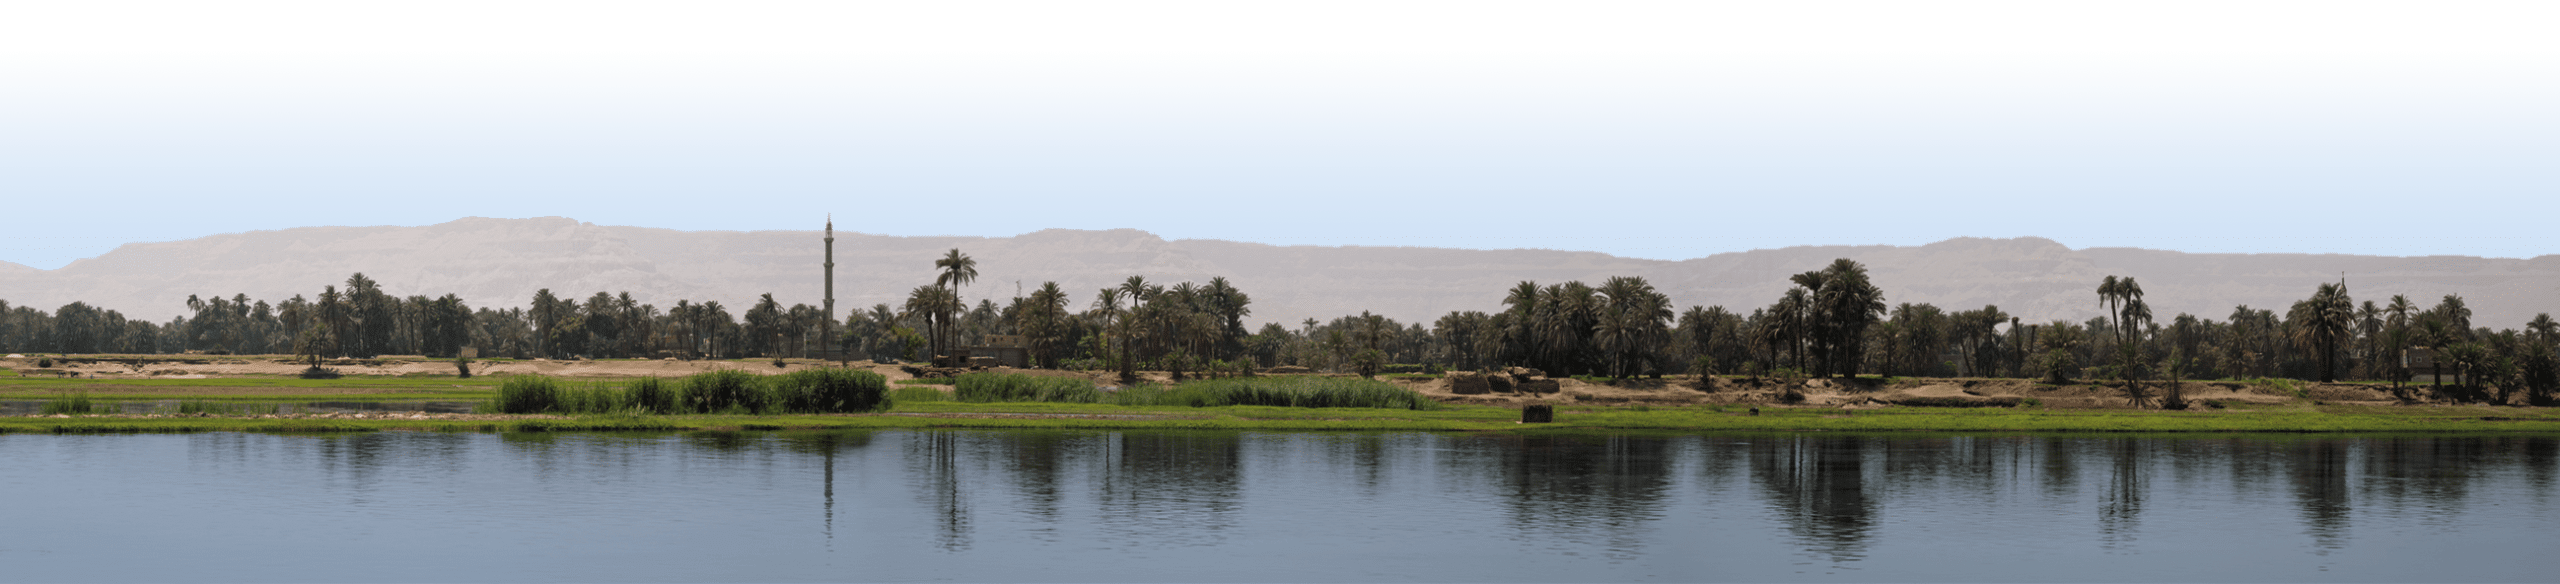 Nile view, Ancient World Tours, SELLING